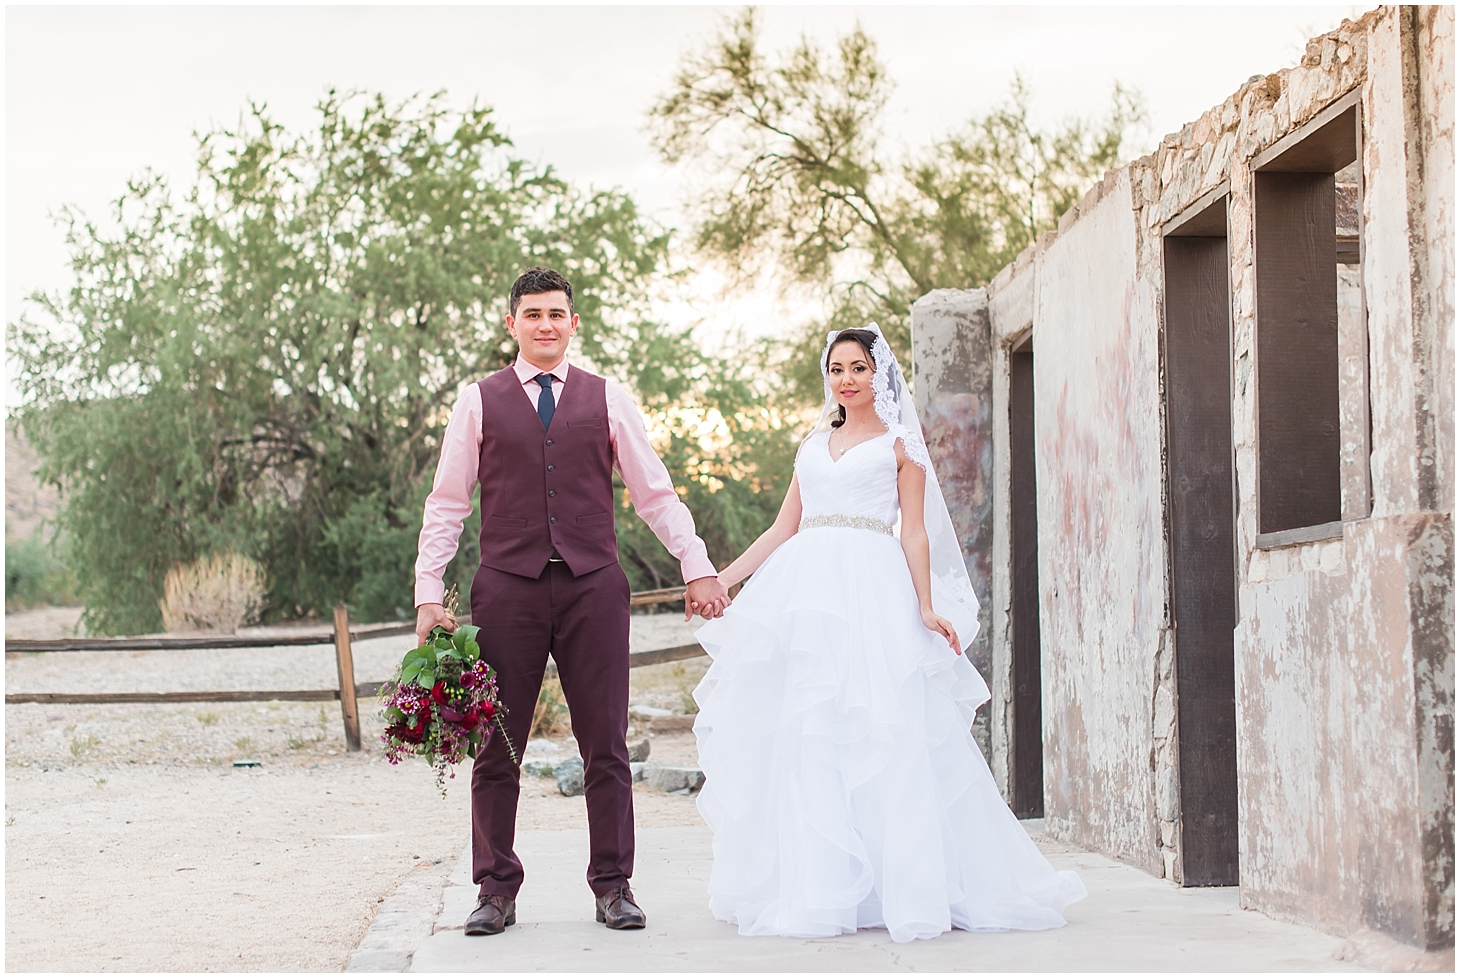 Anniversary session for Nadeera and Alister, photographed at Scorpion Gulch in Phoenix! Photos taken by Phoenix wedding photographer, Jade Min Photography.